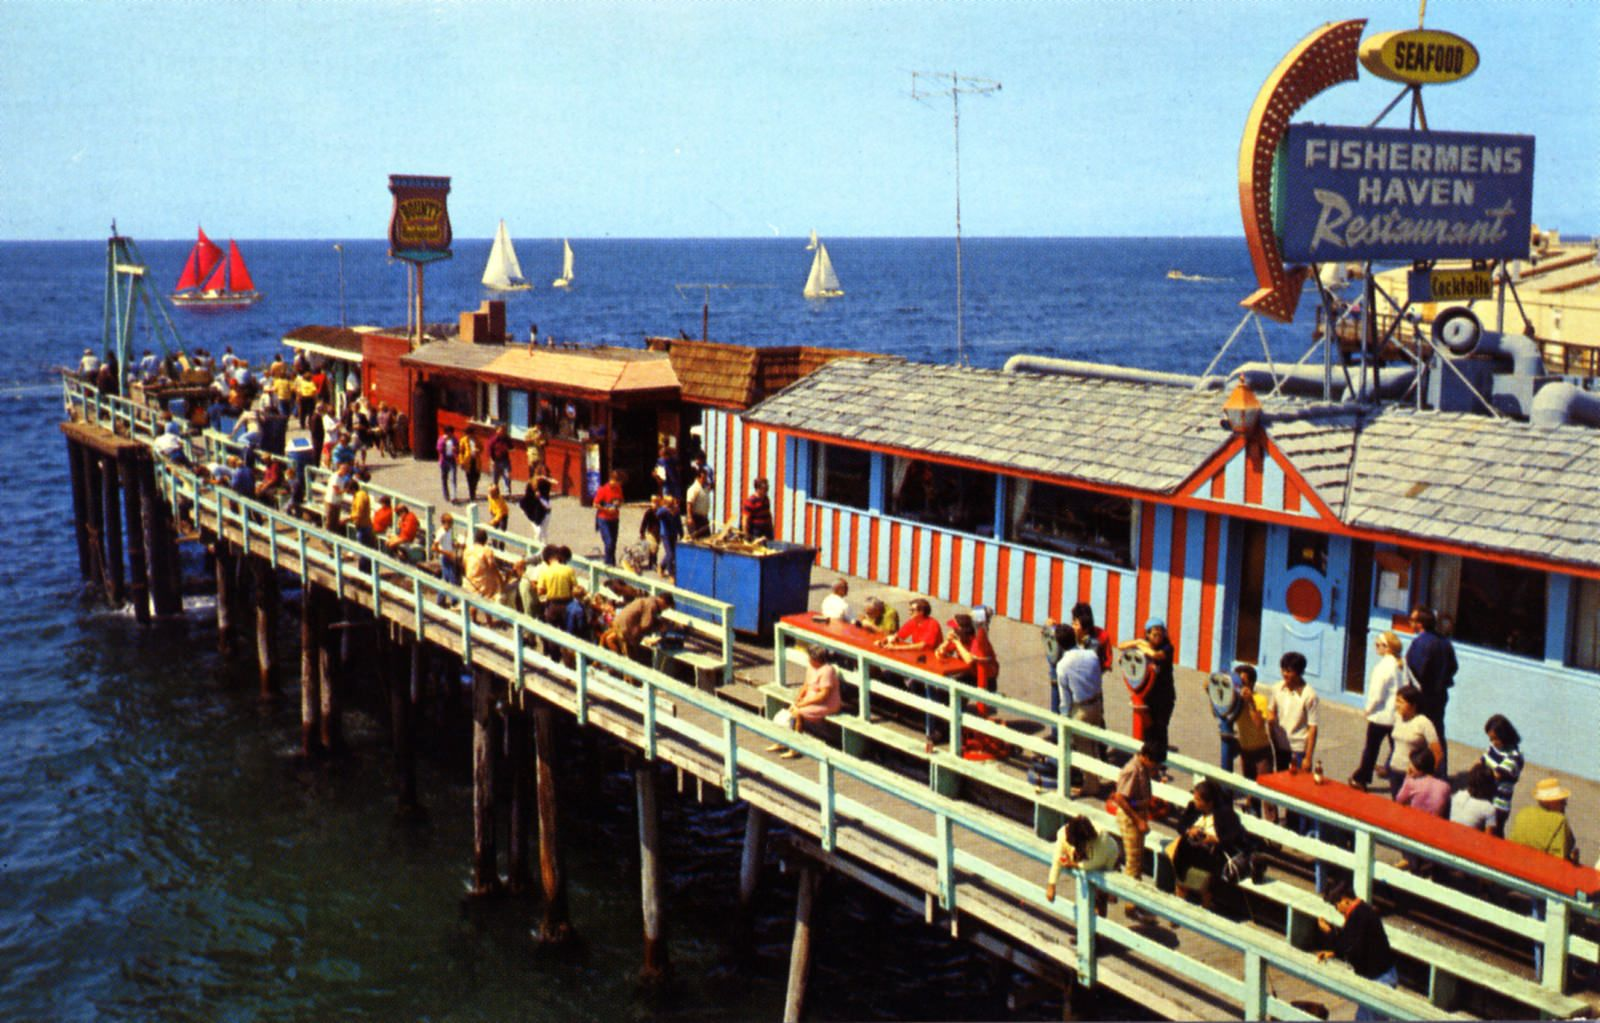 Monstad Pier Fisherman S Village Redondo Beach Ca Fishermen Haven Restaurant